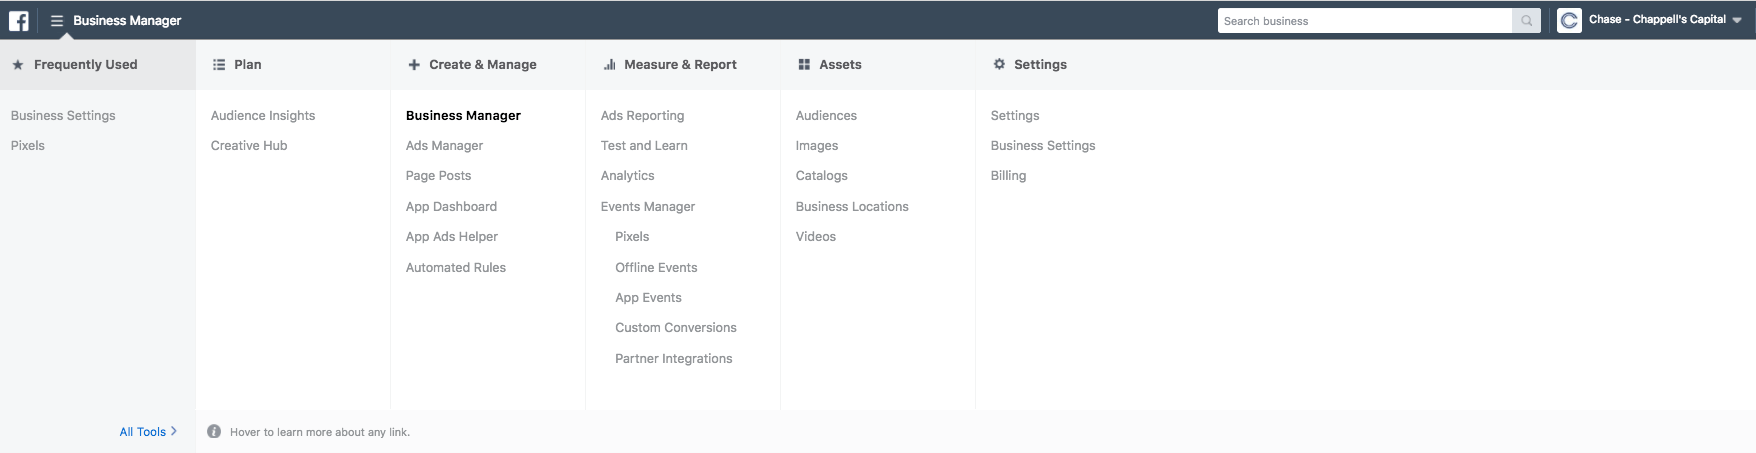 What the Facebook business manager dashboard looks like